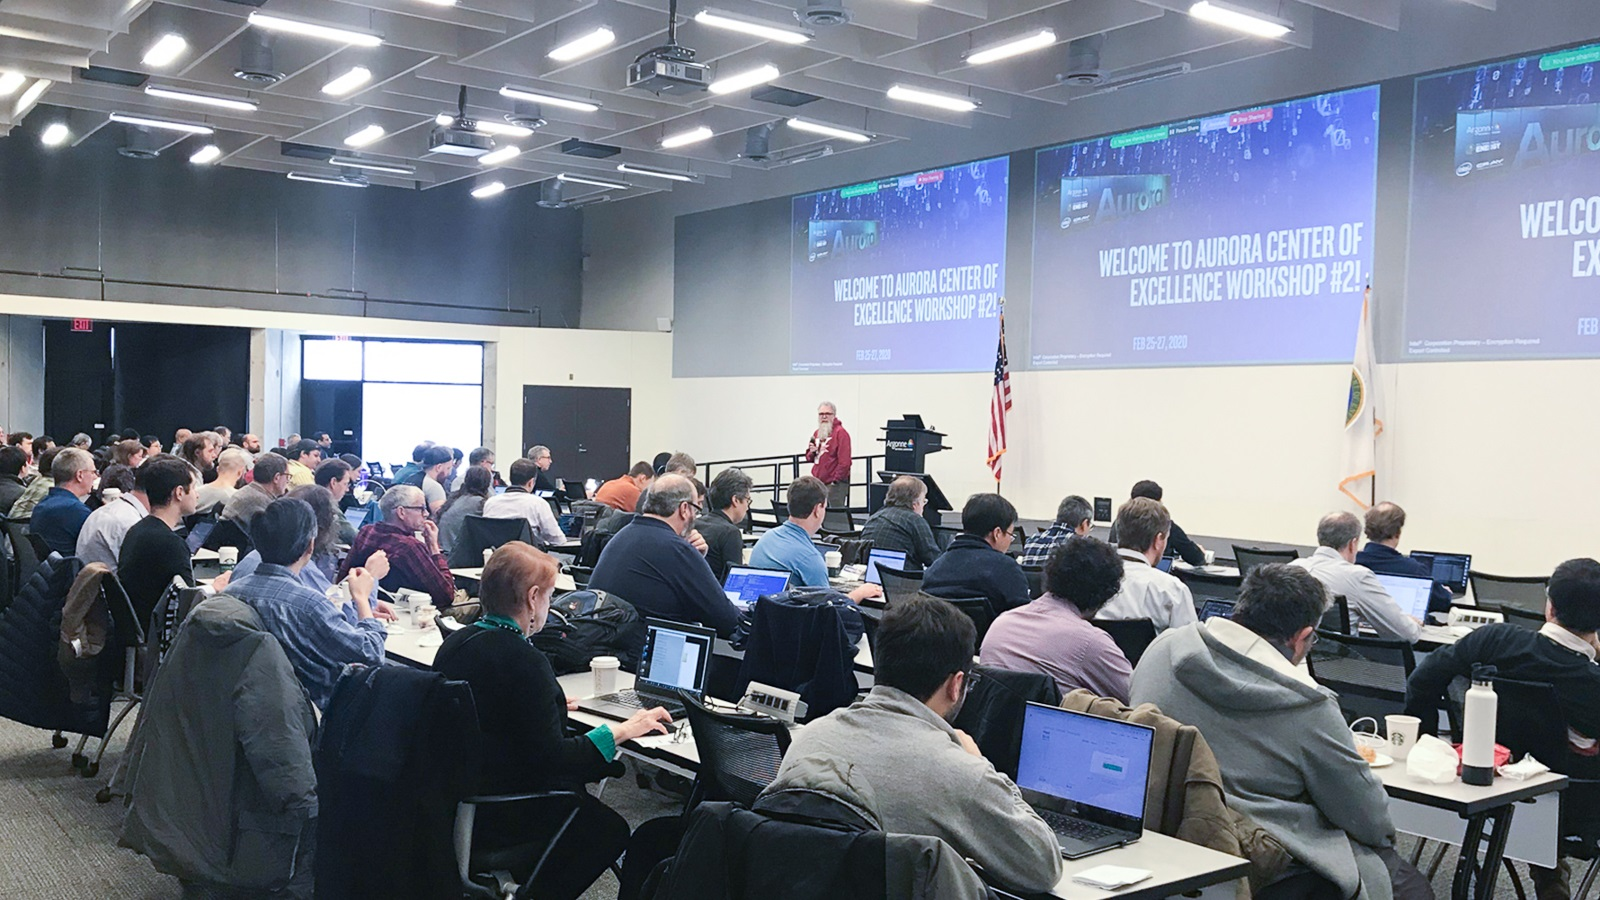 ALCF Director Michael Papka welcomes researchers to a three-day Aurora workshop held at Argonne in late February. (Image by Argonne National Laboratory.)